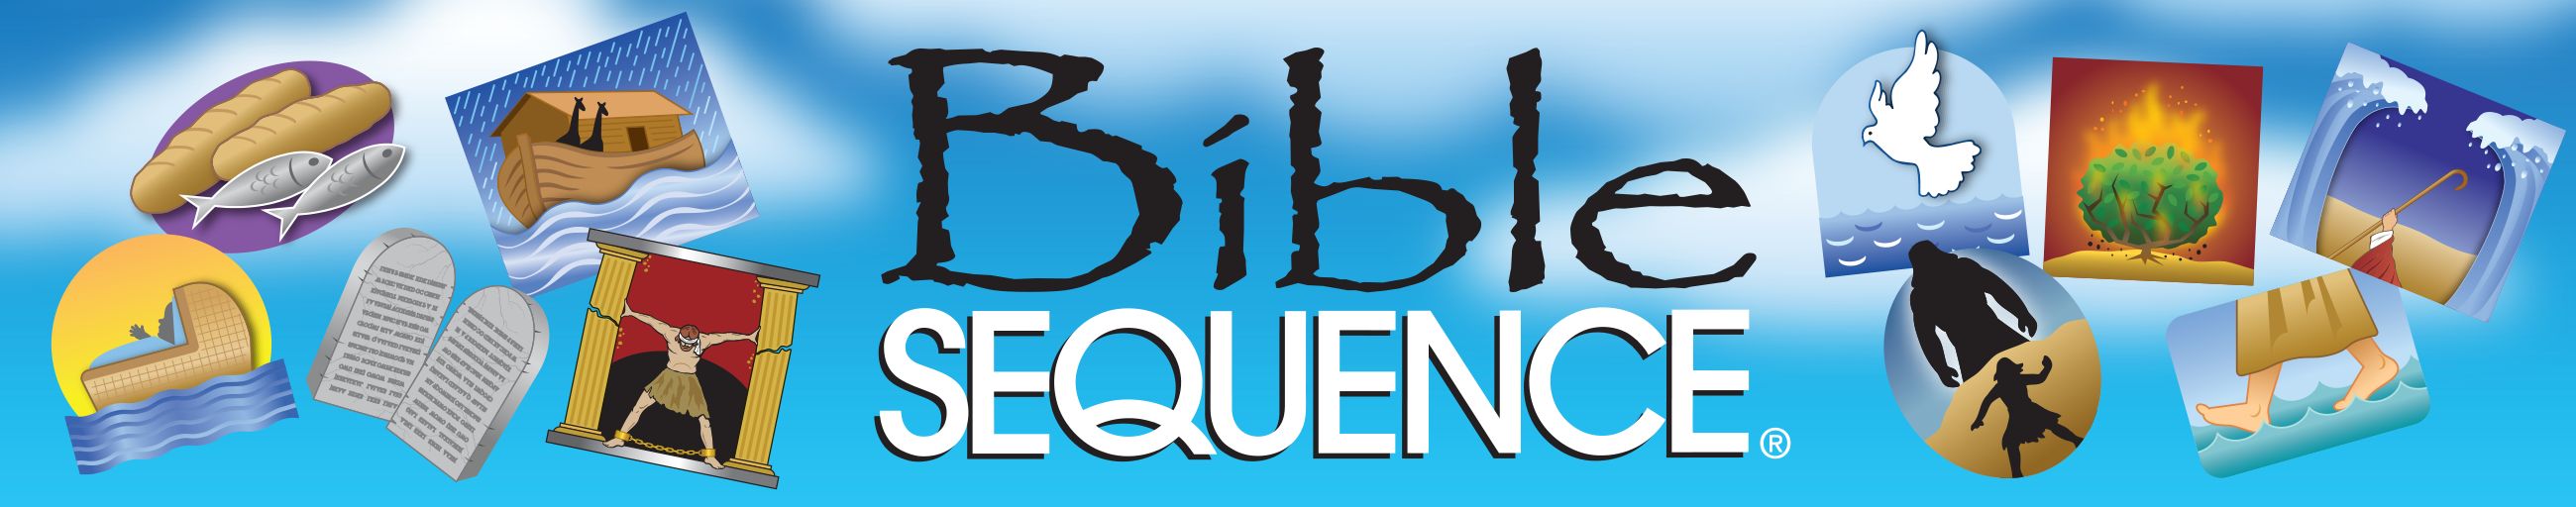 Bible Sequence